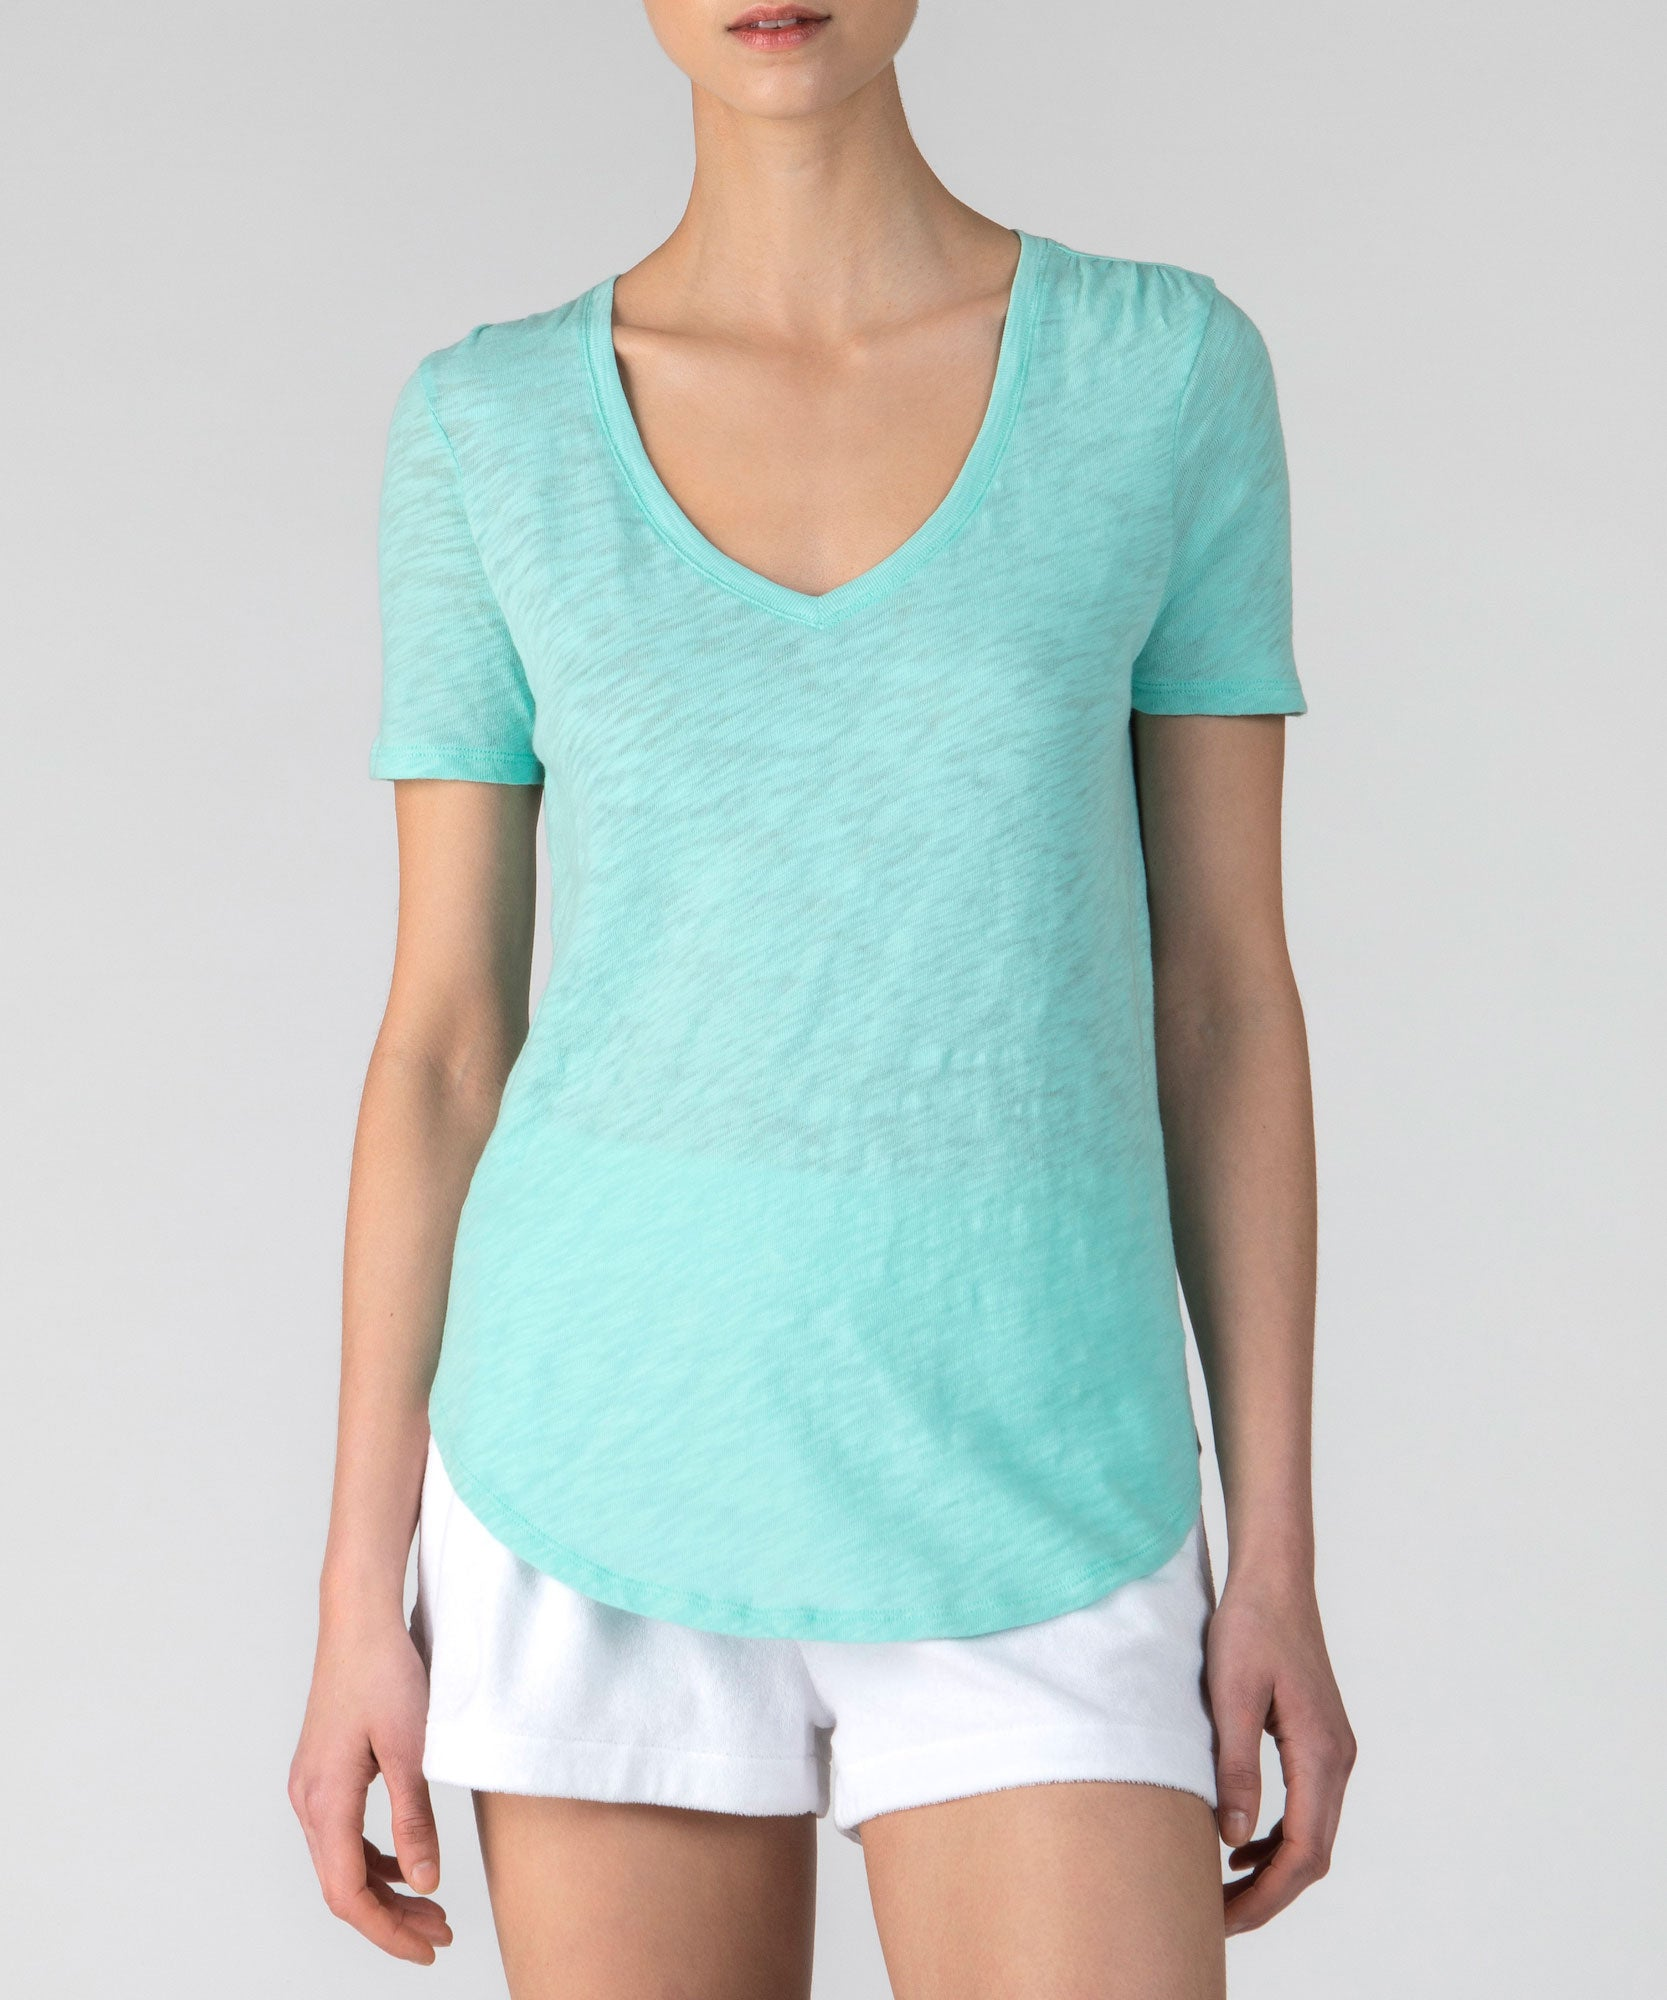 Aqua Slub Jersey Classic V-Neck Tee - Women's Cotton Short Sleeve Tee by ATM Anthony Thomas Melillo